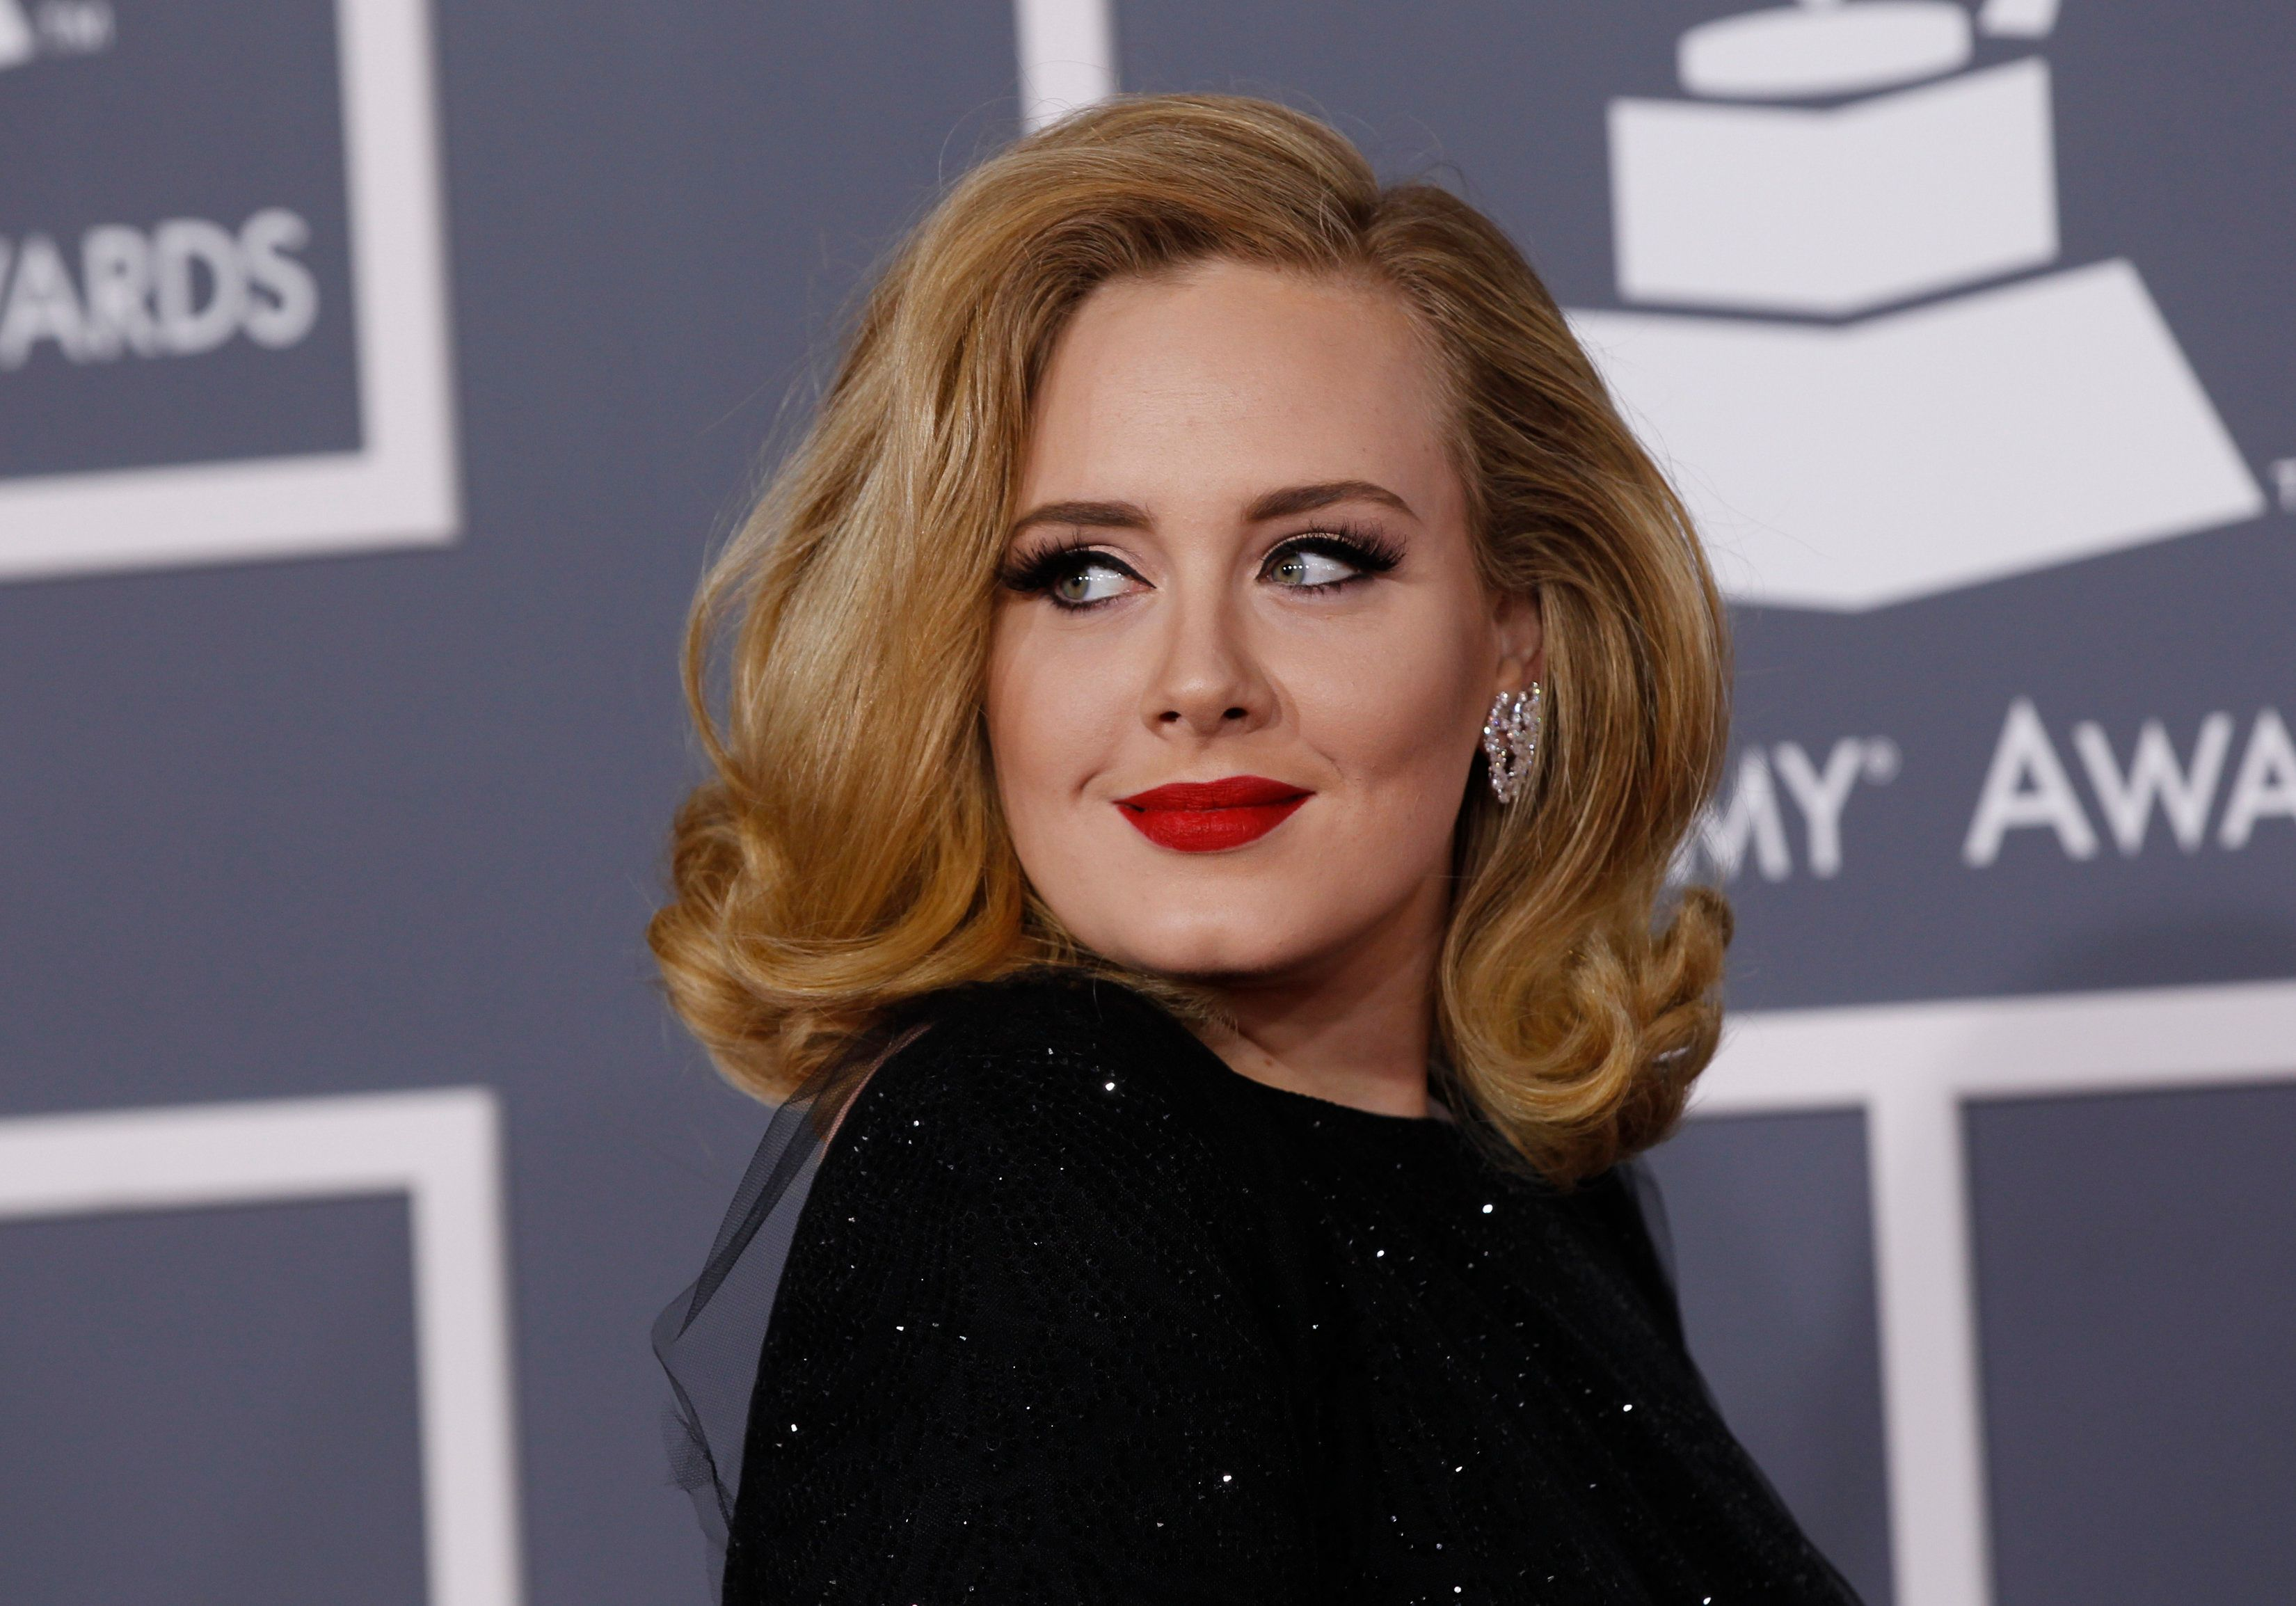 Singer Adele poses as she arrives at the 54th annual Grammy Awards in Los Angeles, California, February 12, 2012.  REUTERS/Danny Moloshok   (UNITED STATES) (GRAMMYS-ARRIVALS)